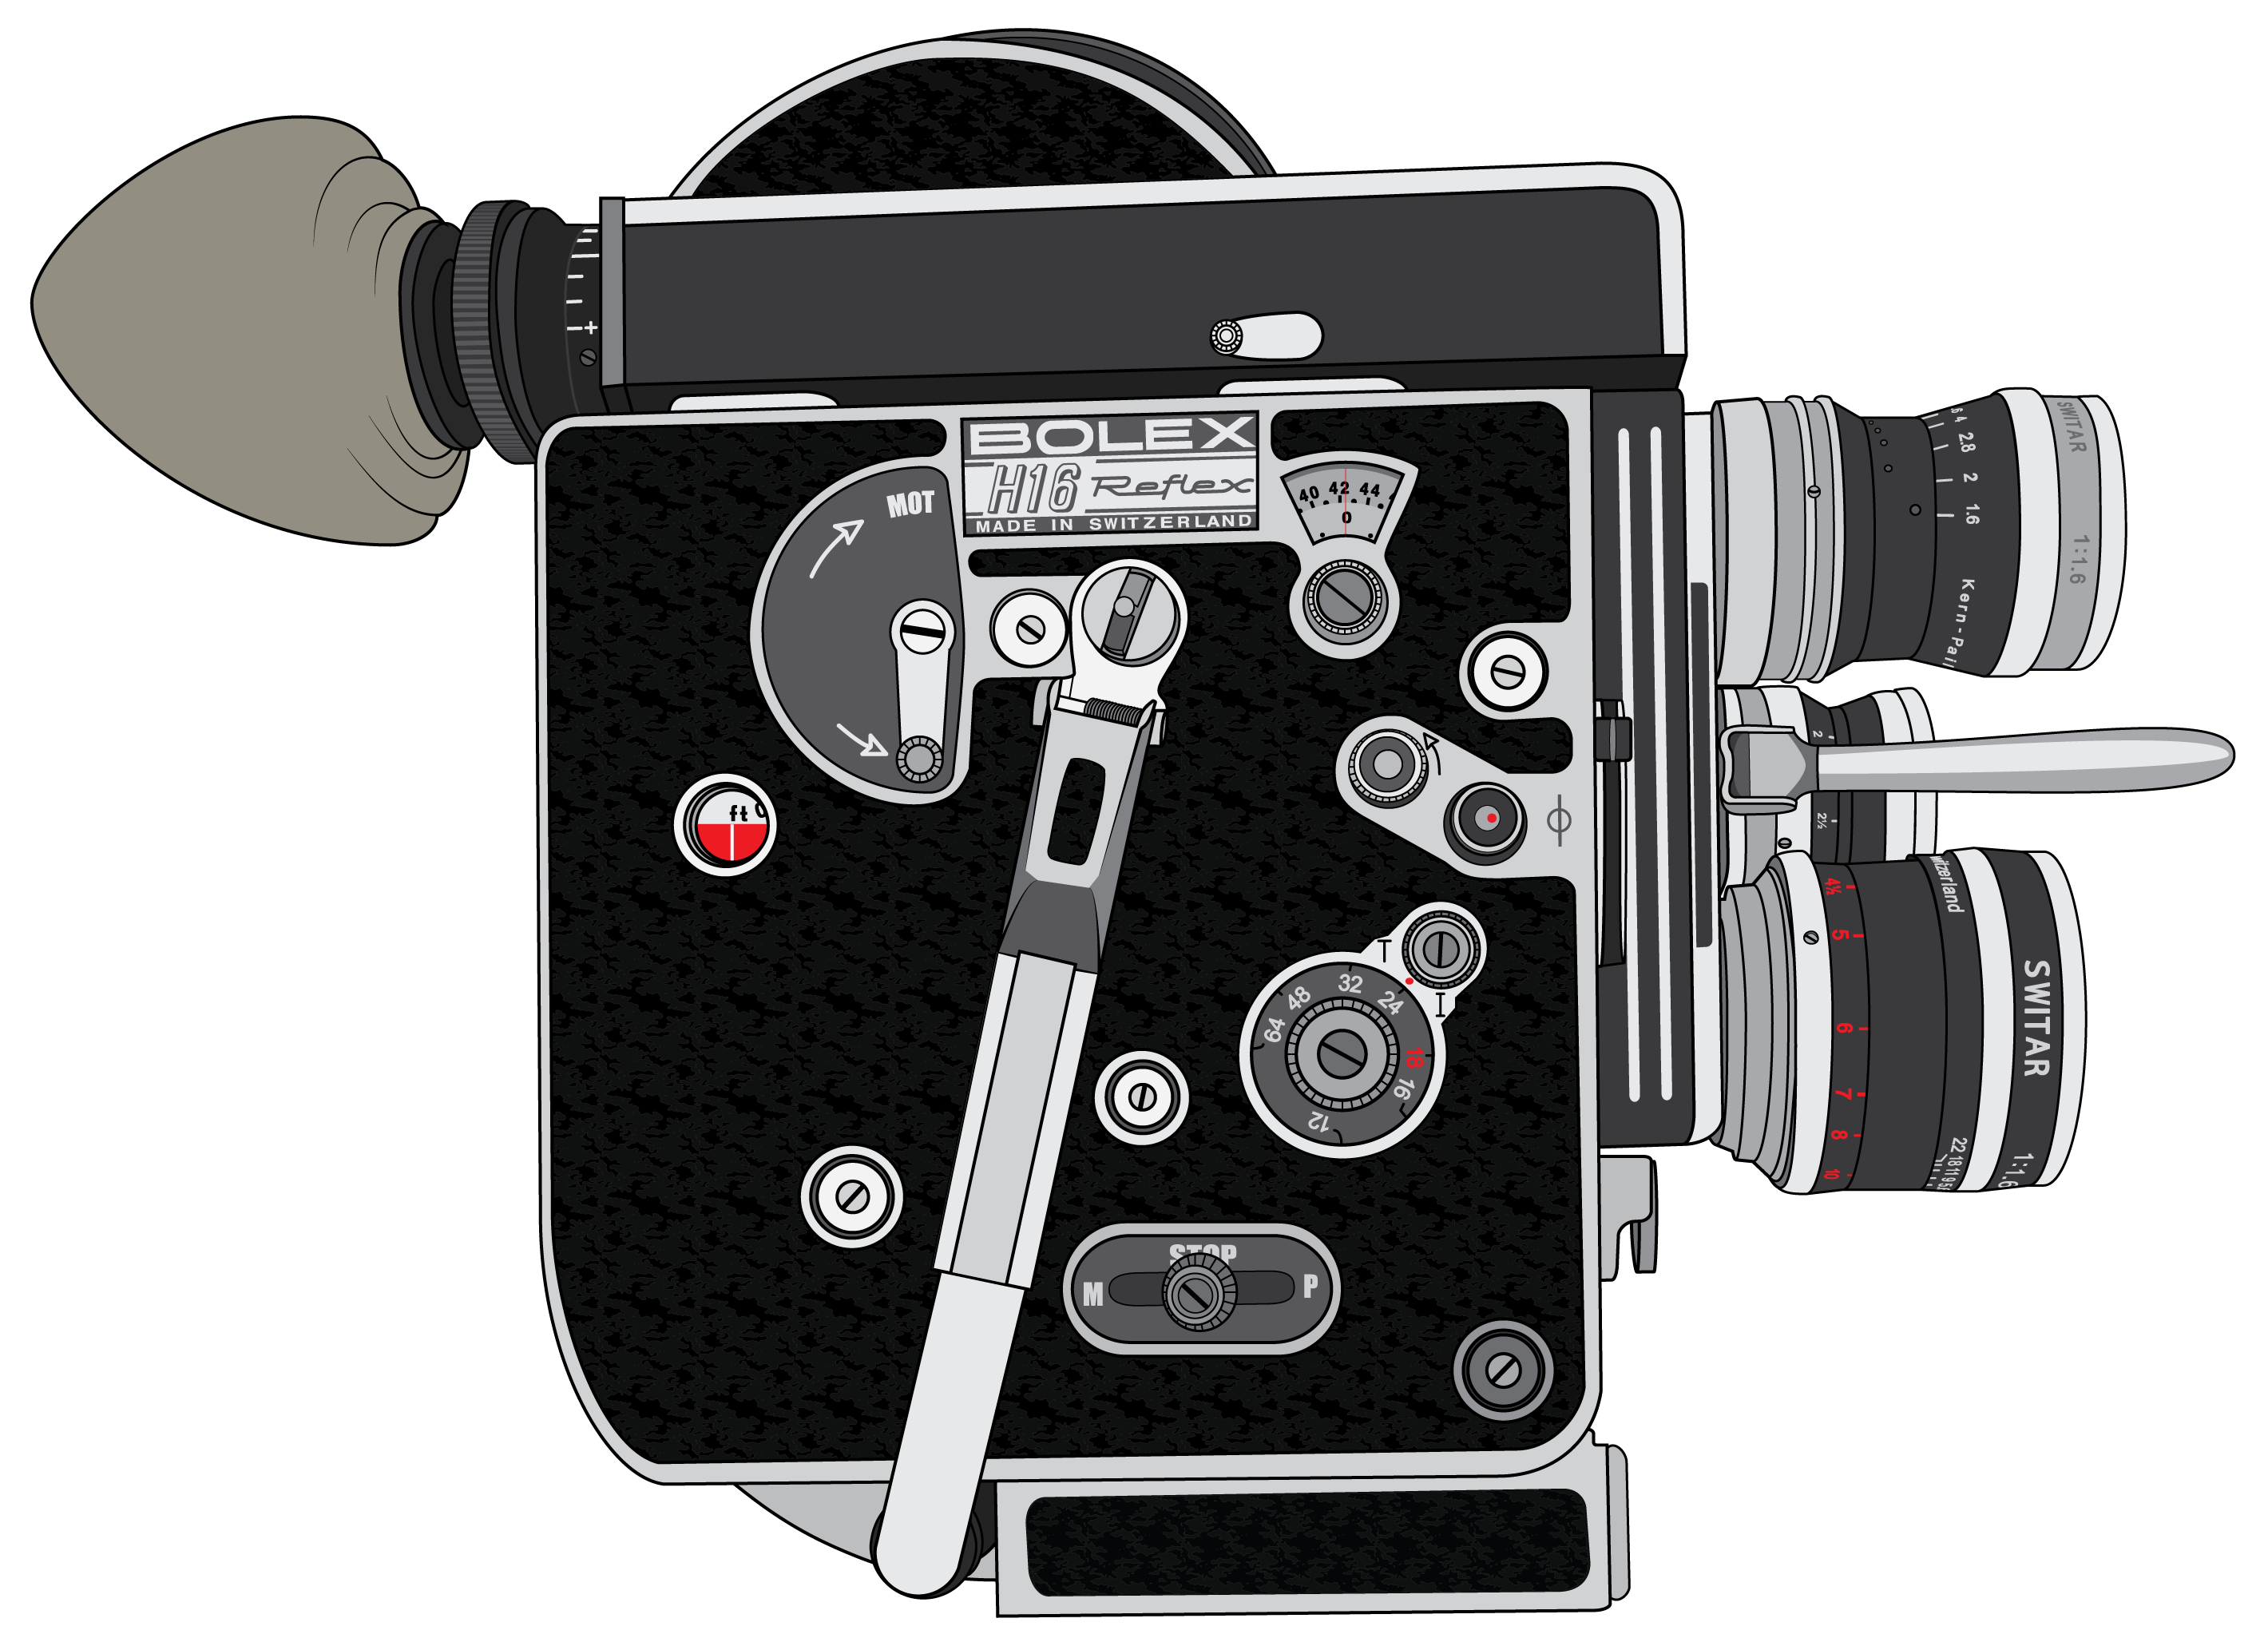 Vintage camera vector png. Bolex mm film architecture